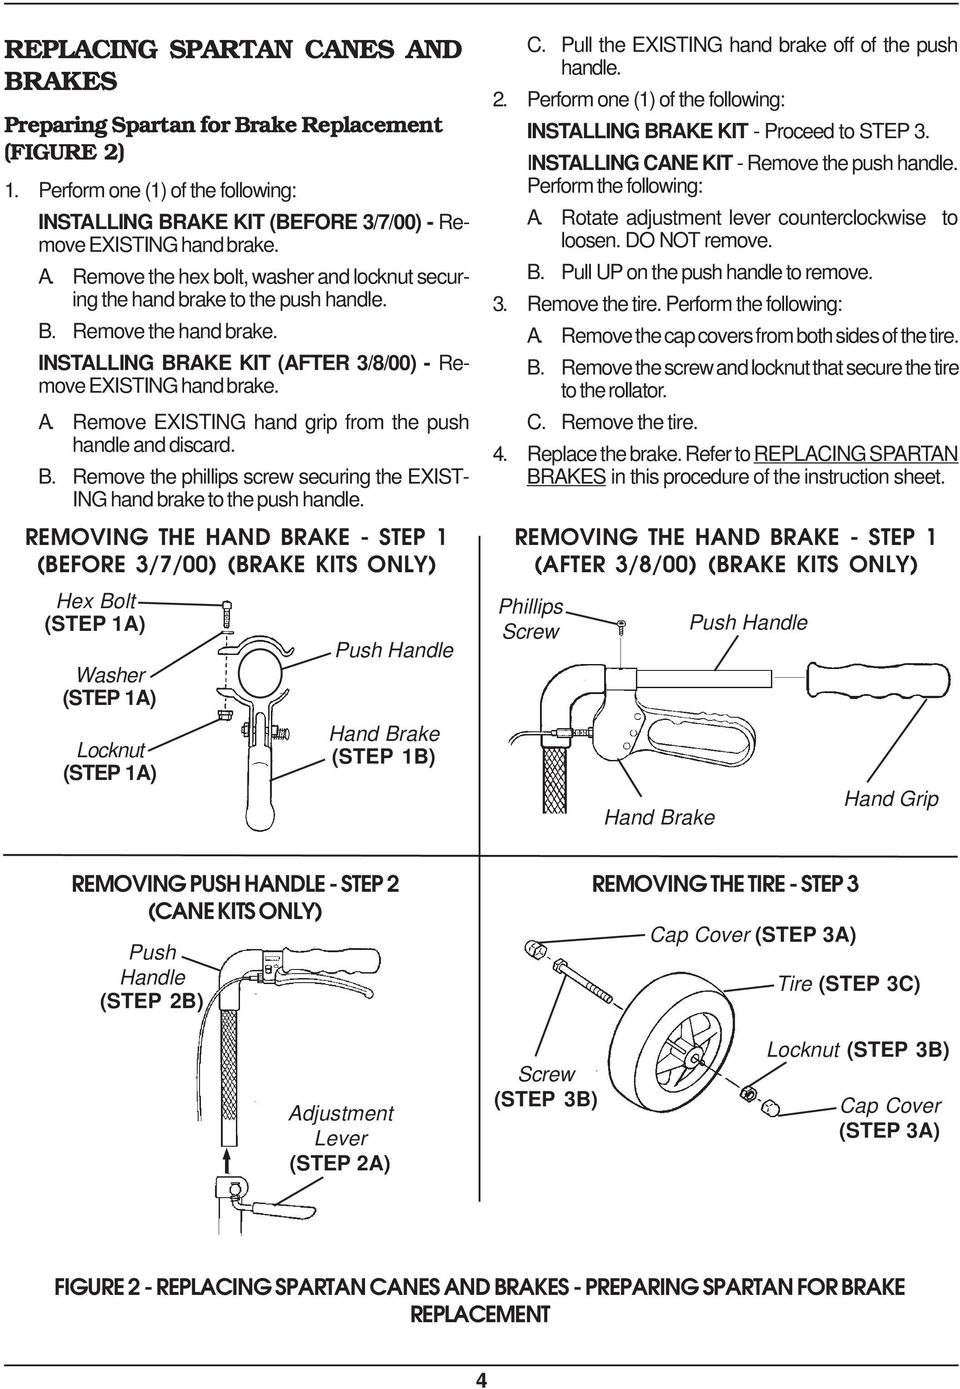 REMOVING THE HAND BRAKE - STEP 1 (BEFORE 3/7/00) (BRAKE KITS ONLY) Hex Bolt (STEP 1A) Washer (STEP 1A) Locknut (STEP 1A) Push Handle Hand (STEP 1B) C.